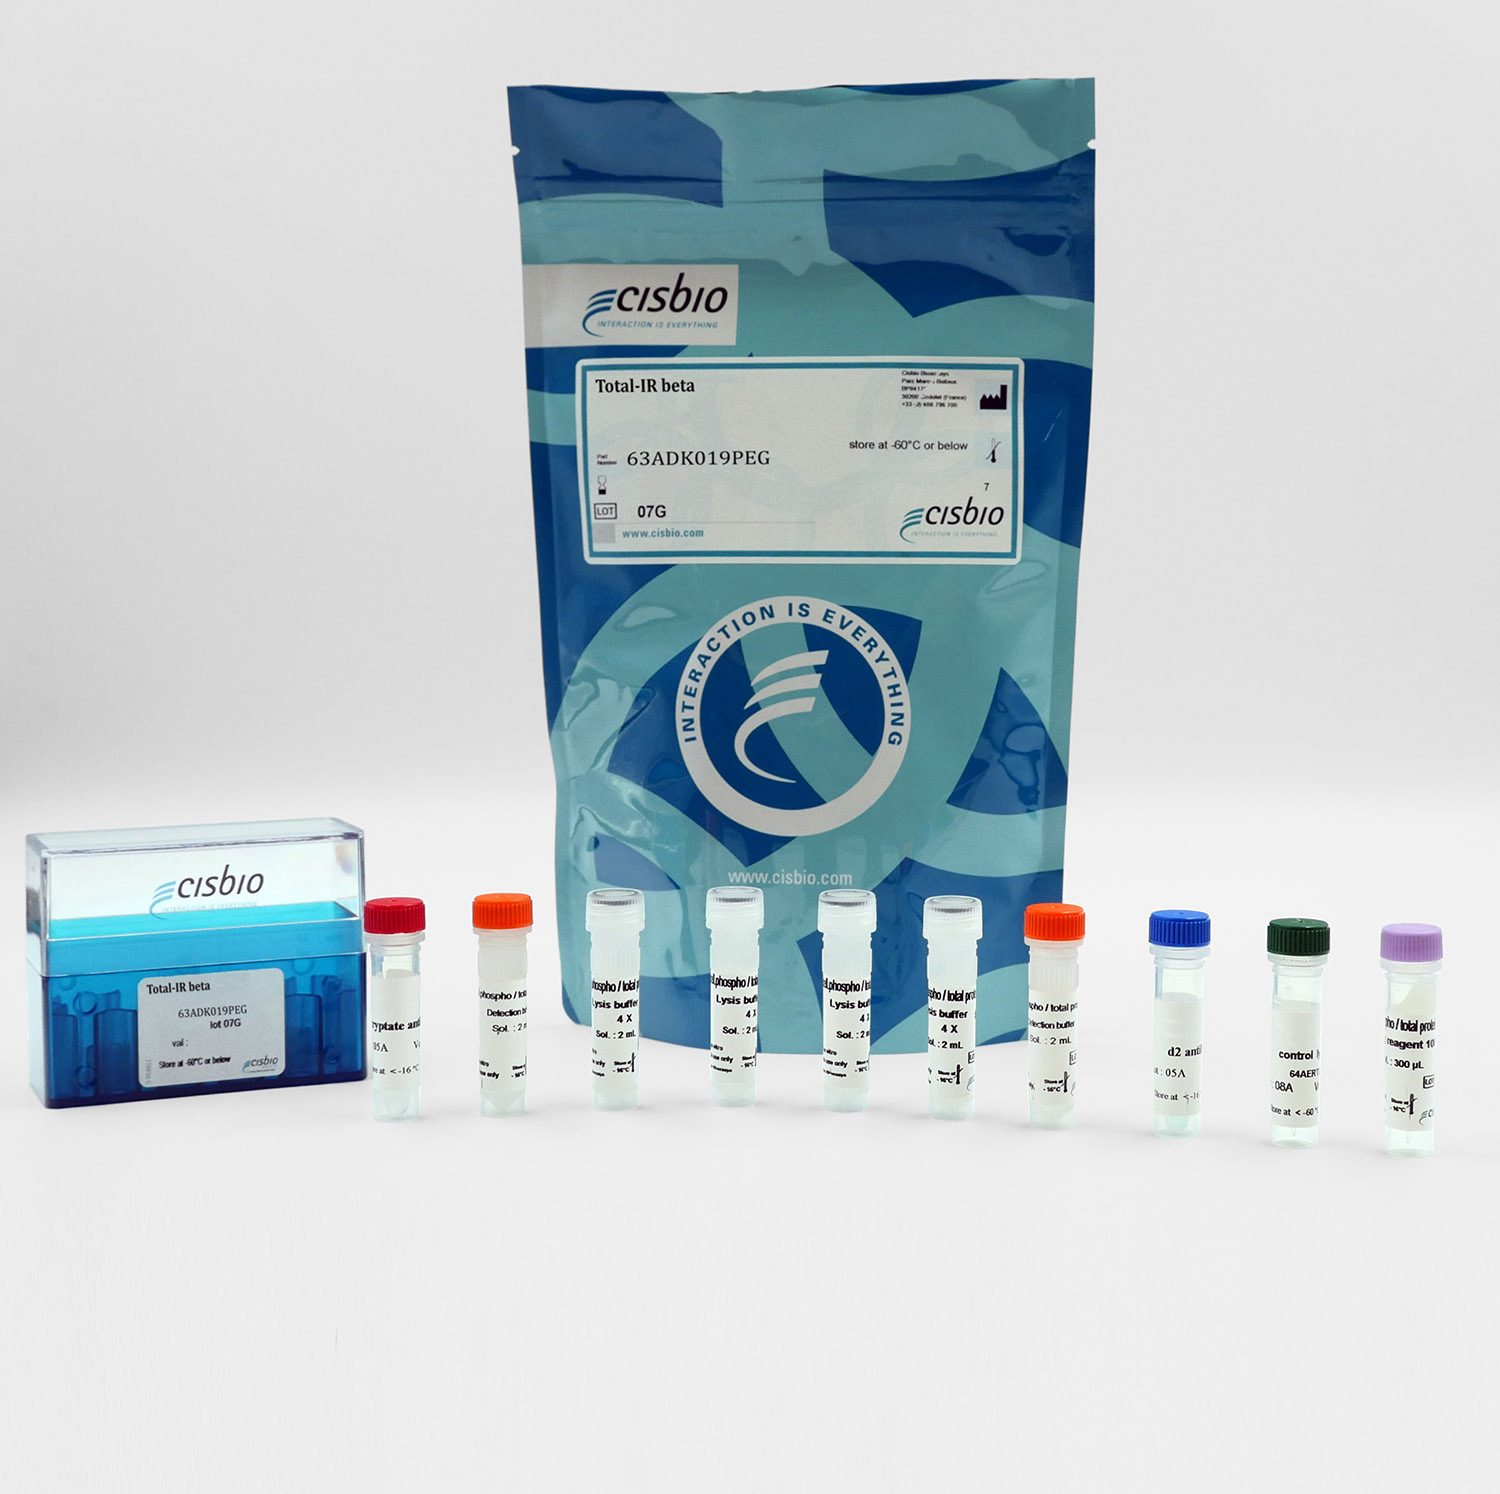 Total Insulin Receptor beta cellular kit